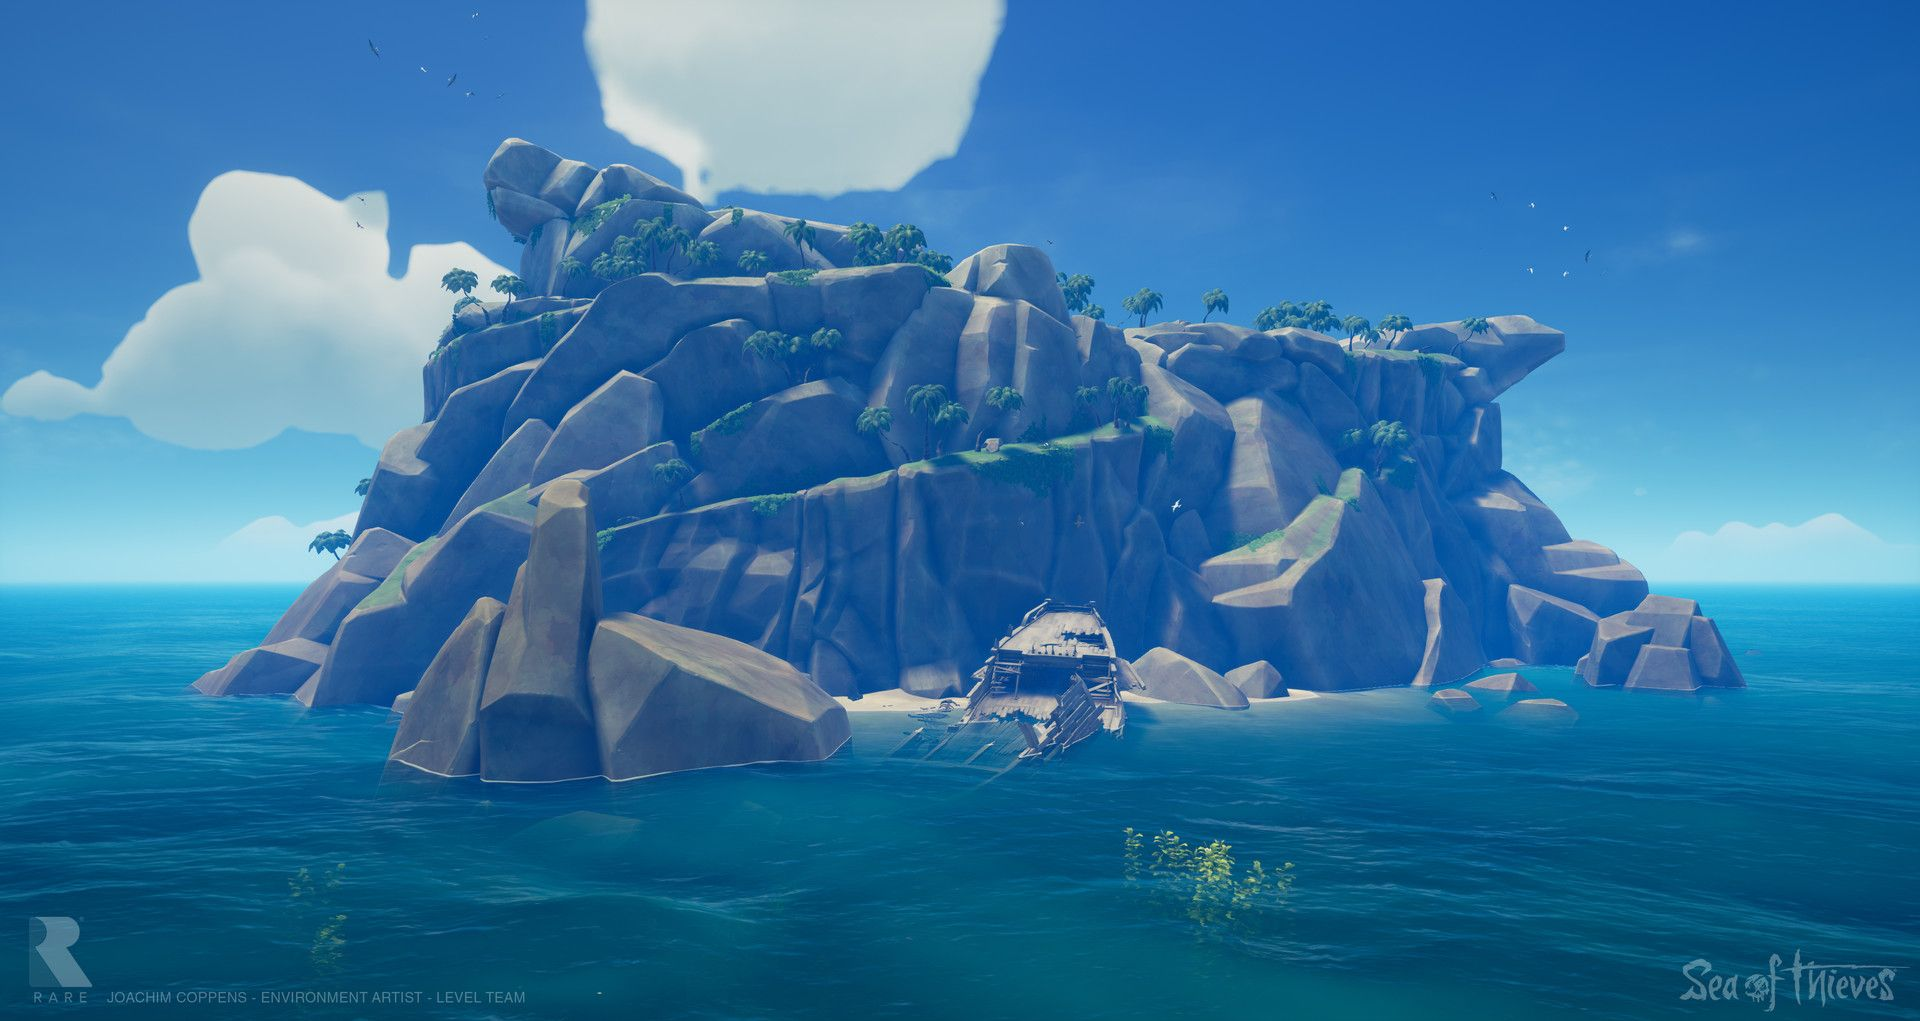 ArtStation - Sea of Thieves: The Ancient Isles, Joachim Coppens